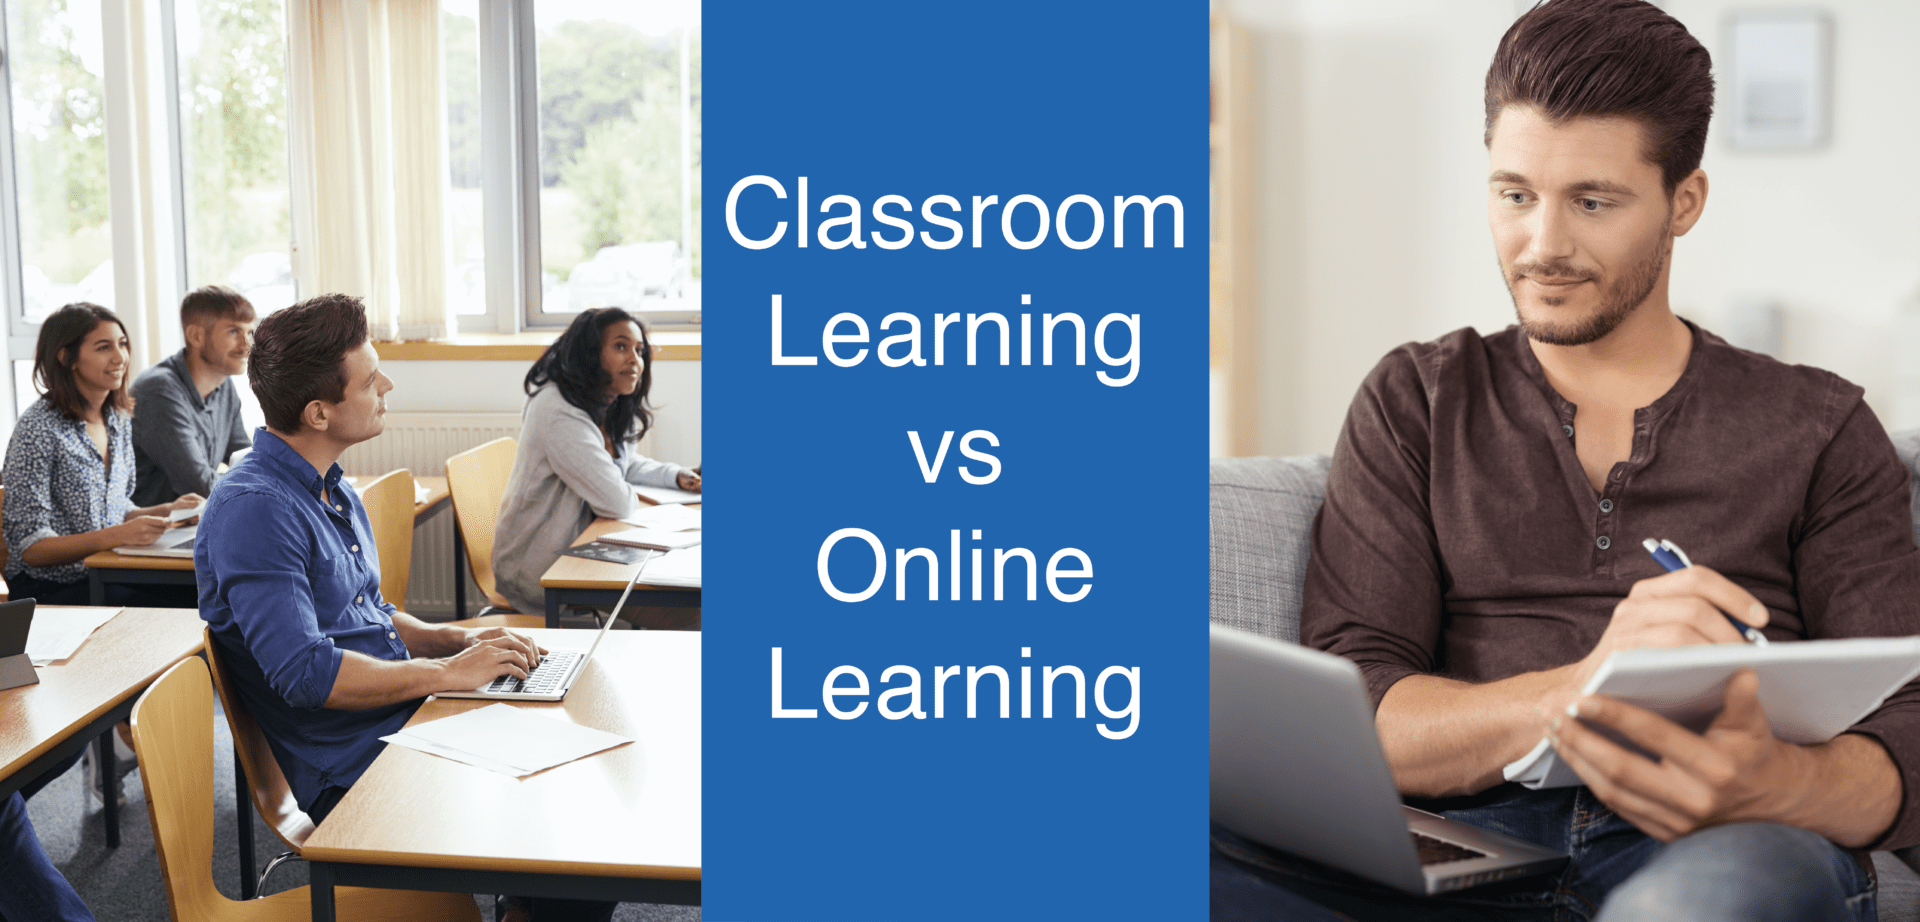 Classroom Learning vs Online Learning - which one do you choose?